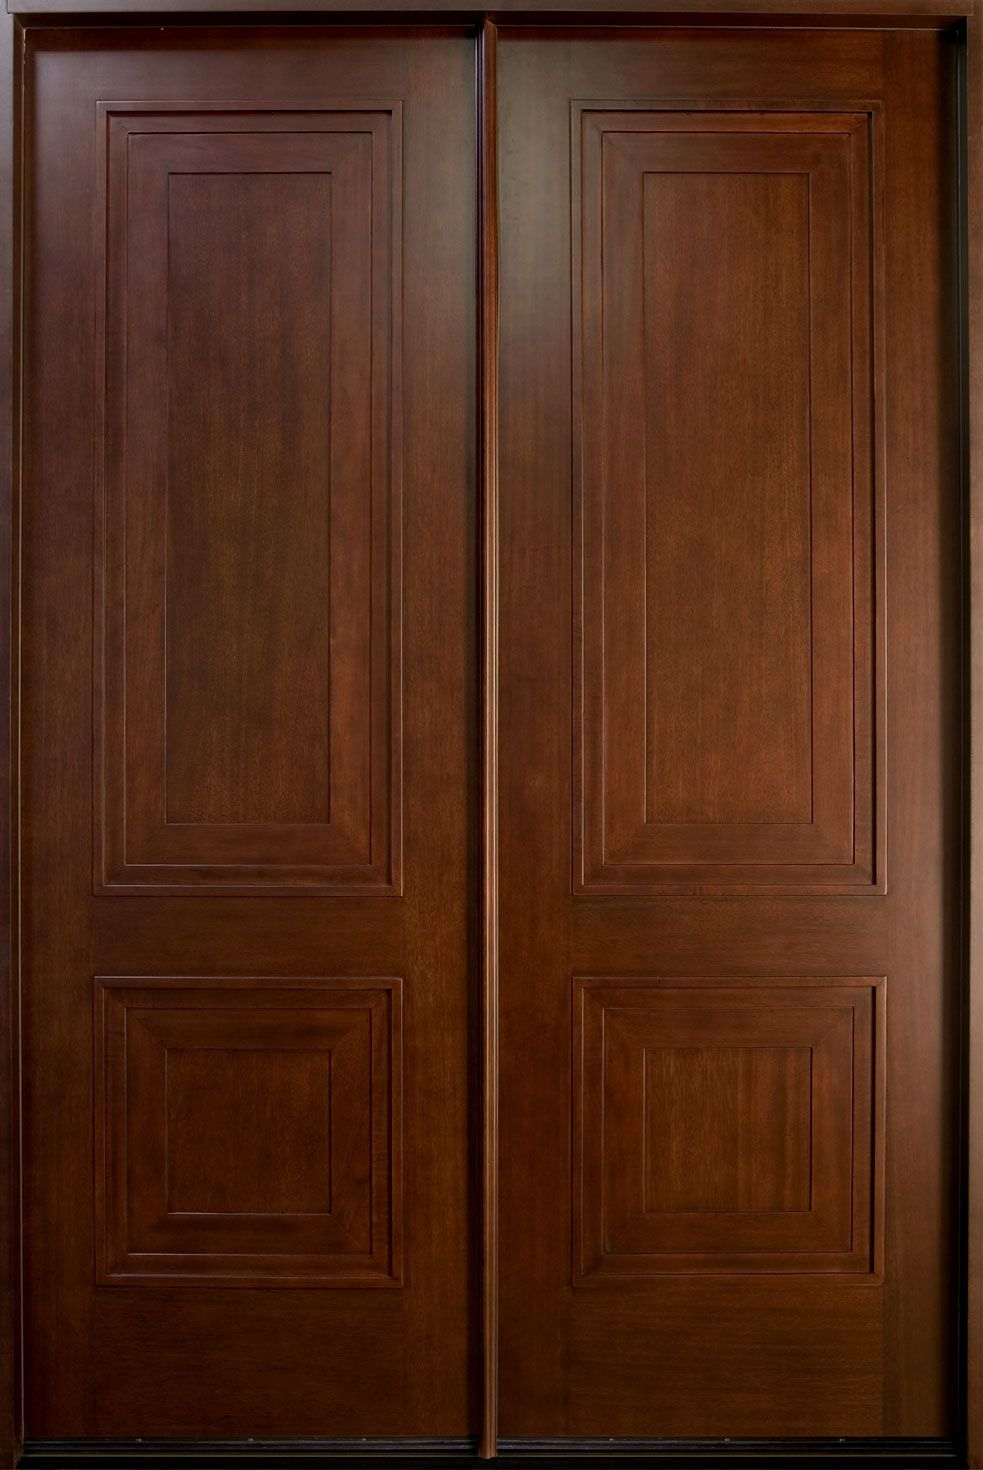 Mahogany walls entry google search doors windows pinterest wood double door models doors may appear more challenging to fasten due to how they close at first rather than shutting t planetlyrics Gallery